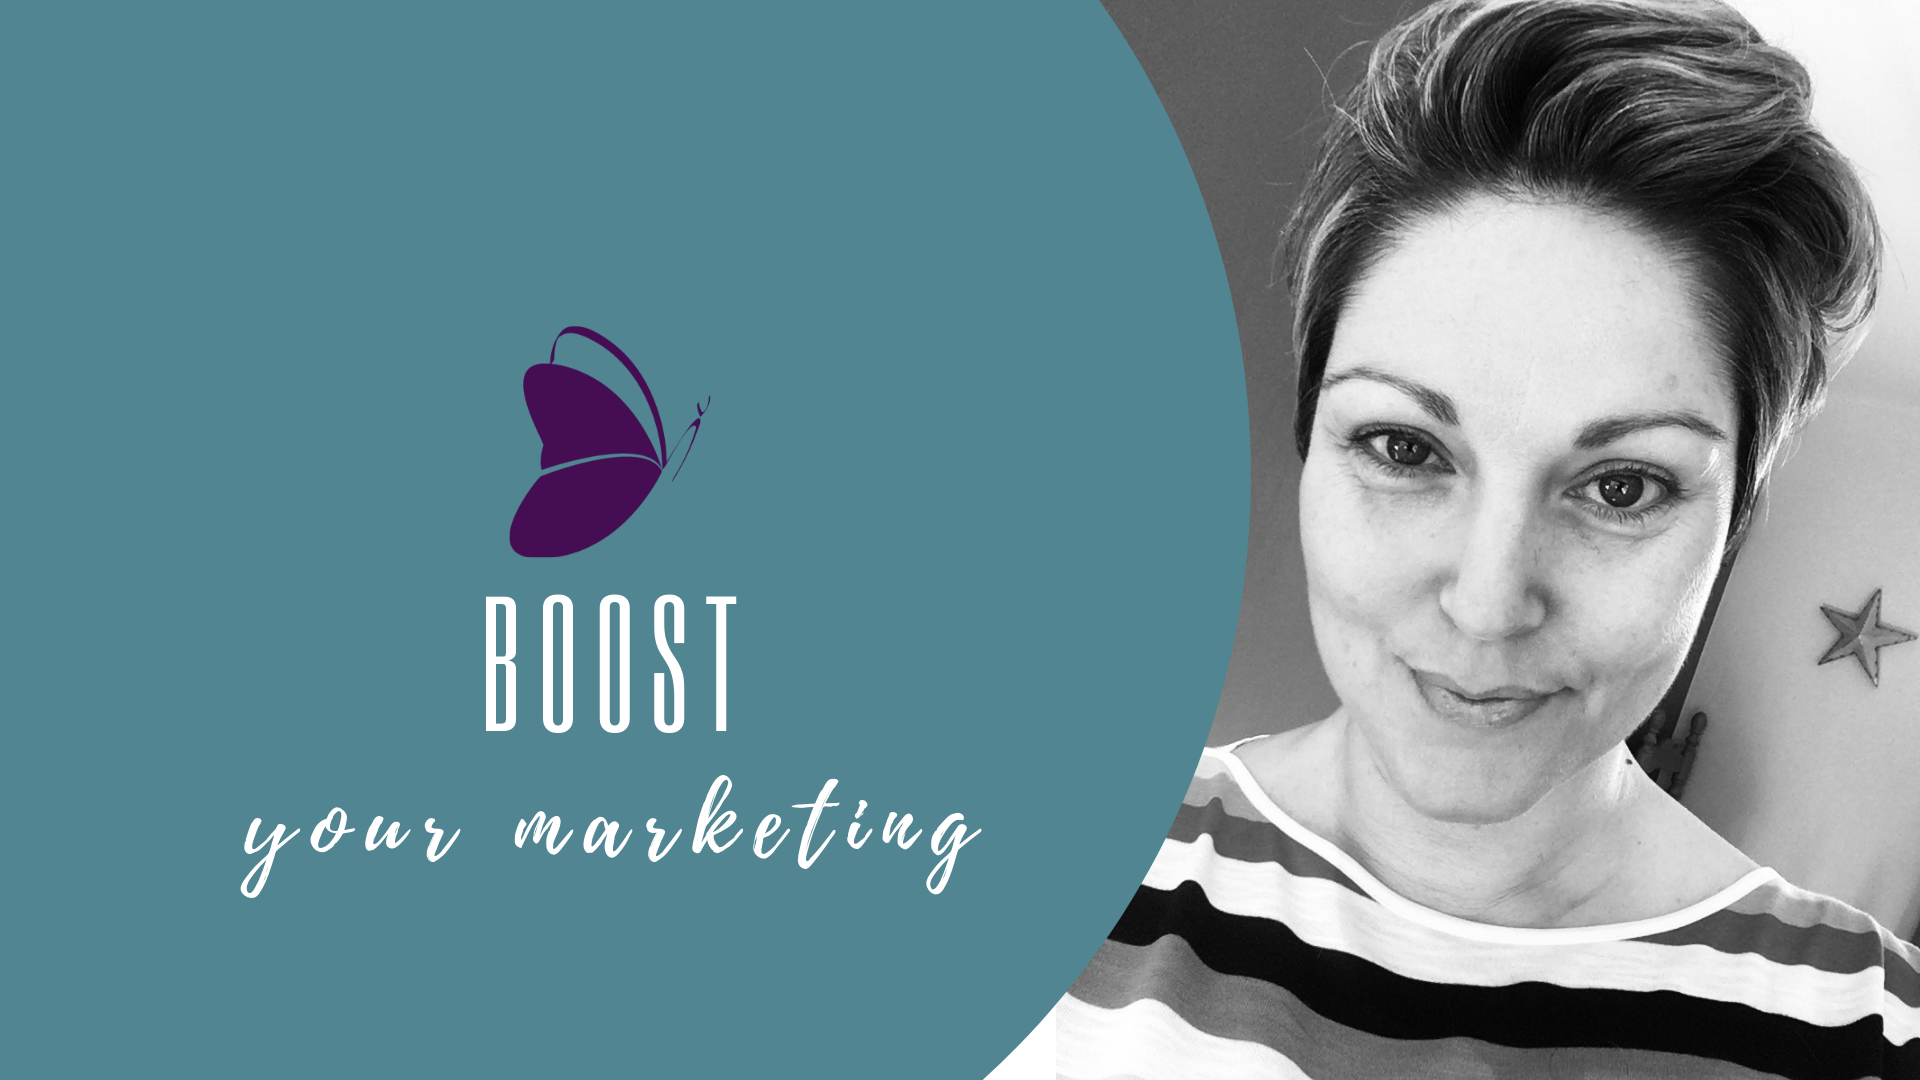 Boost your marketing with mentoring emma lannigan